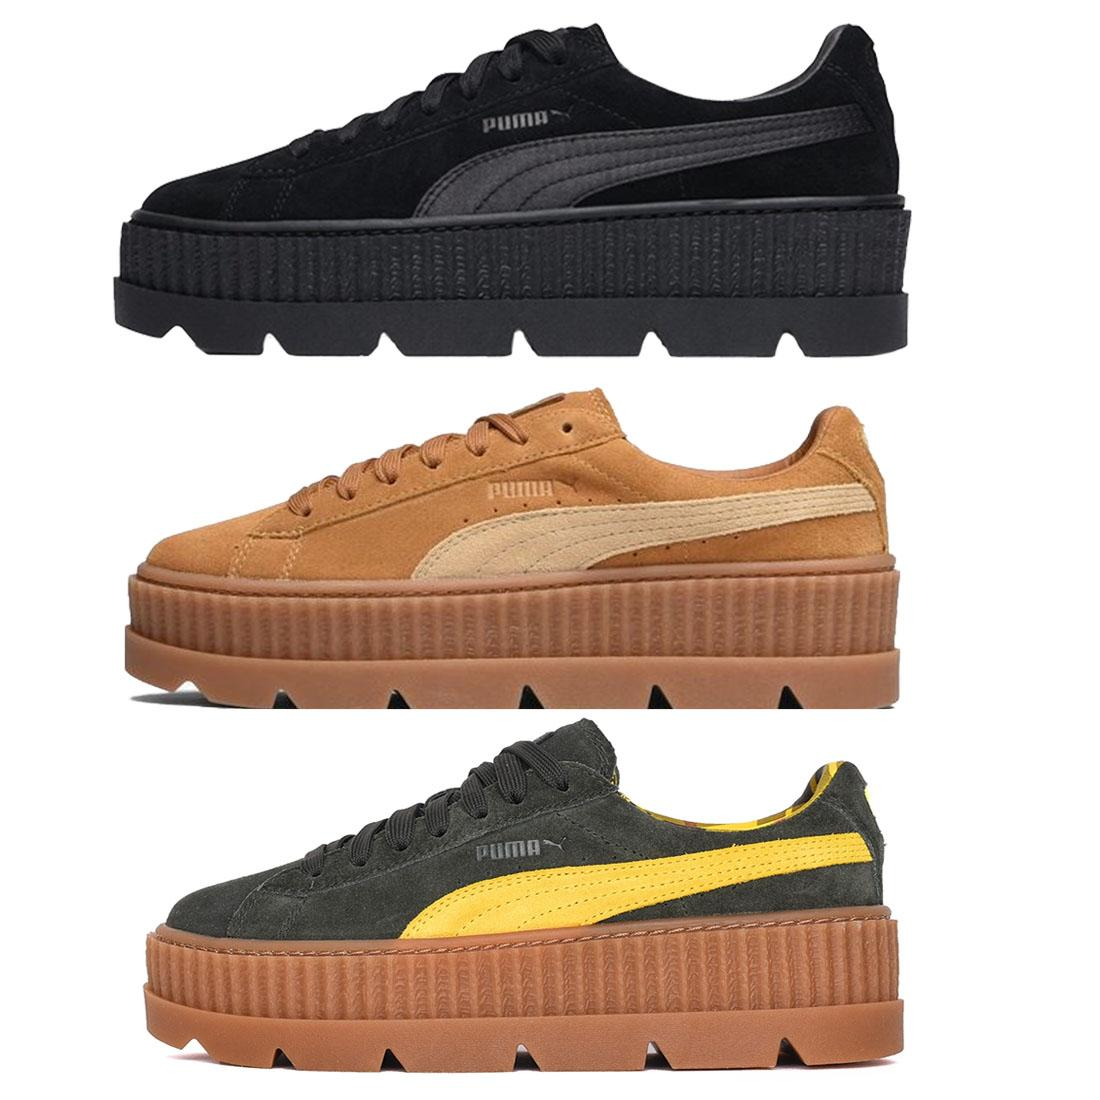 PUMA Fenty X Rihanna Cleated Creeper Shoes Ladies Black Brown Green Trainers 0735235a1